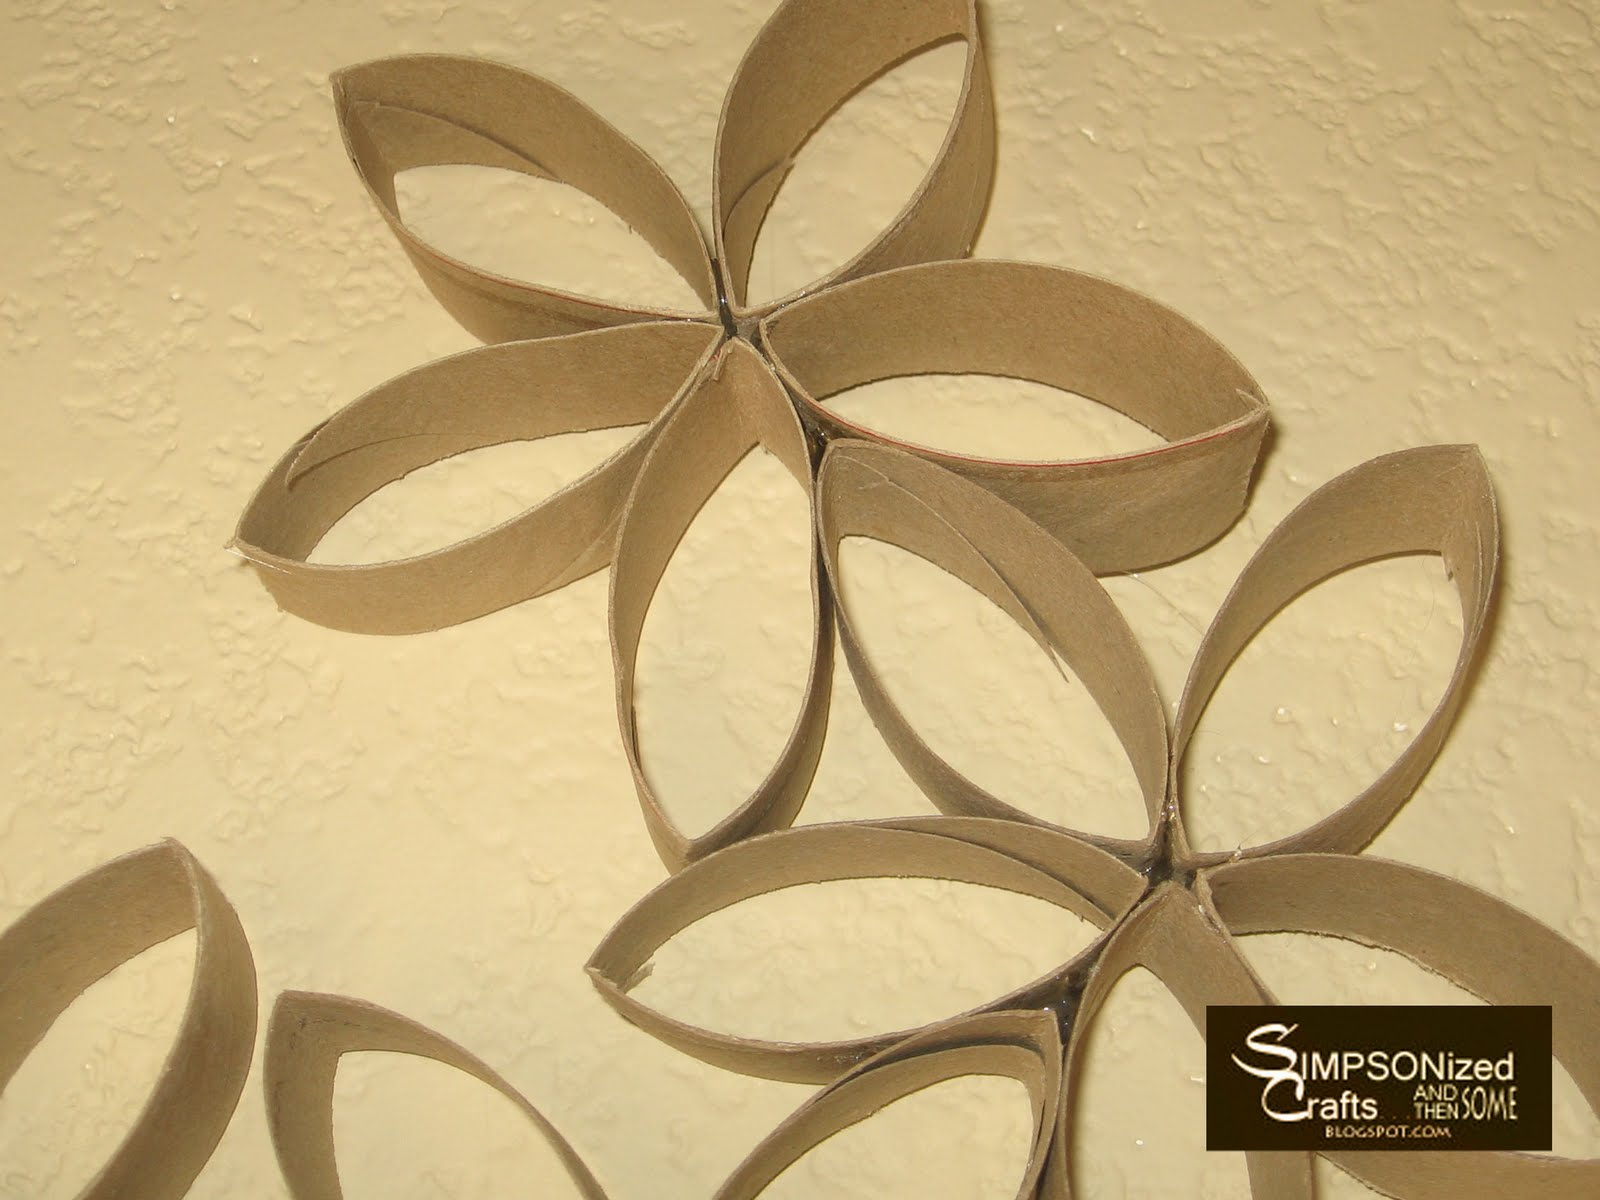 toilet paper roll flower crafts - Kubre.euforic.co